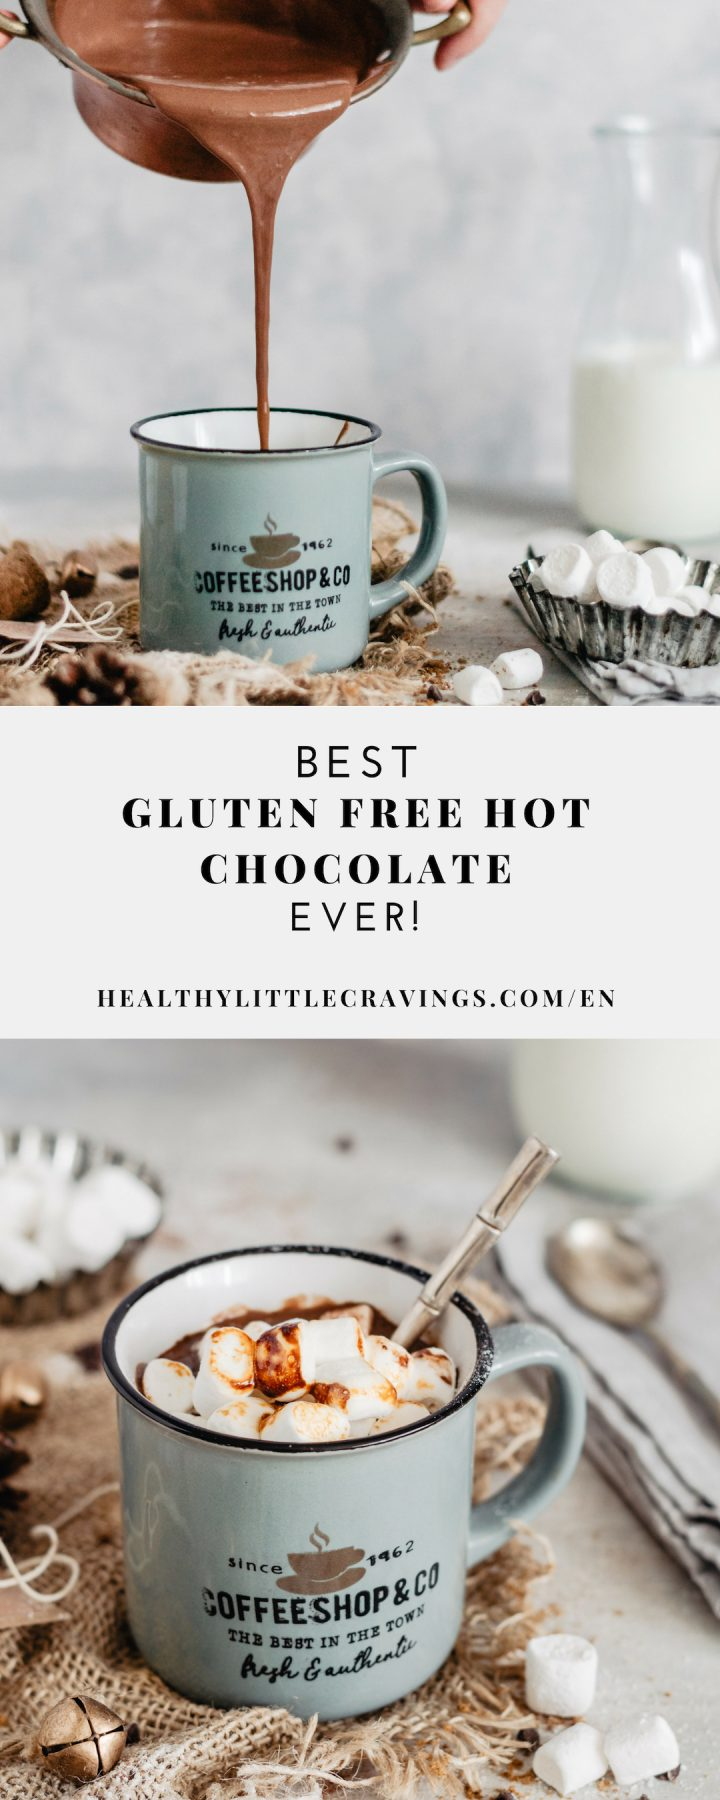 gluten free hot chocolate with milk or plant milk